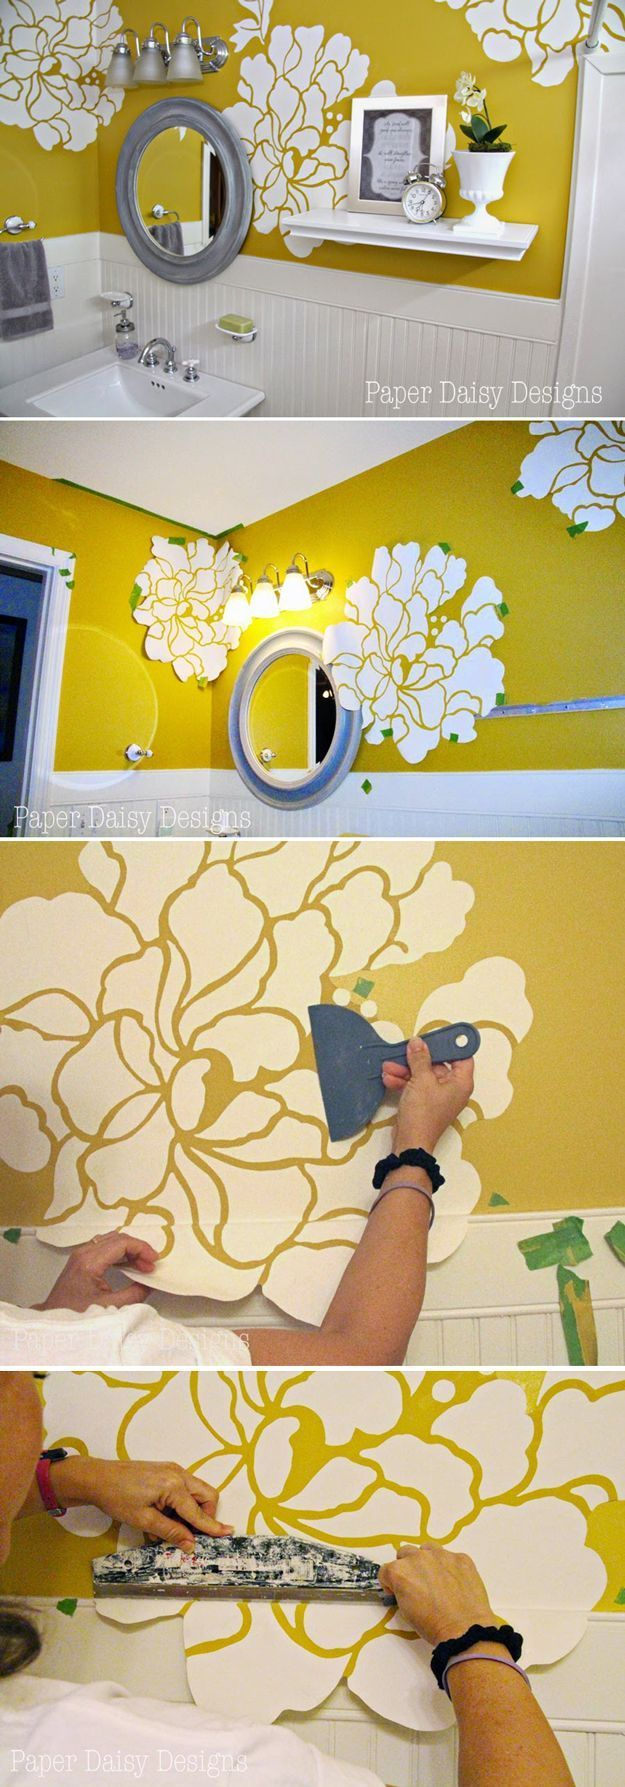 Anthropologie Wall Paper Hack | DIY Home Decor Anthropologie Hack Design Ideas by DIY Ready at http://diyready.com/diy-decor-anthropologie-hacks/